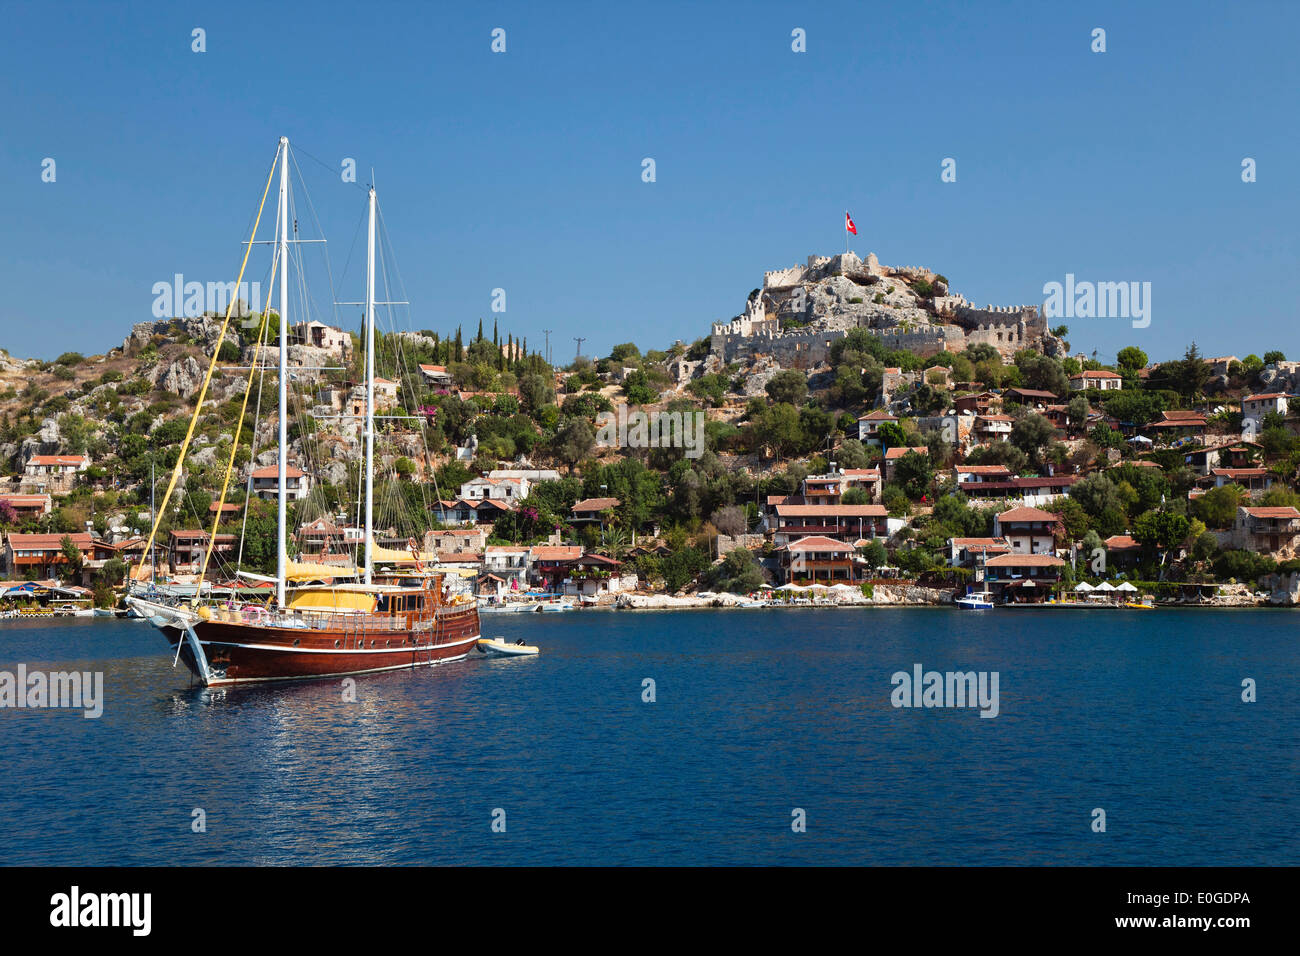 Simena with Kalekoy castle, lycian coast, Mediterranean Sea, Turkey Stock Photo